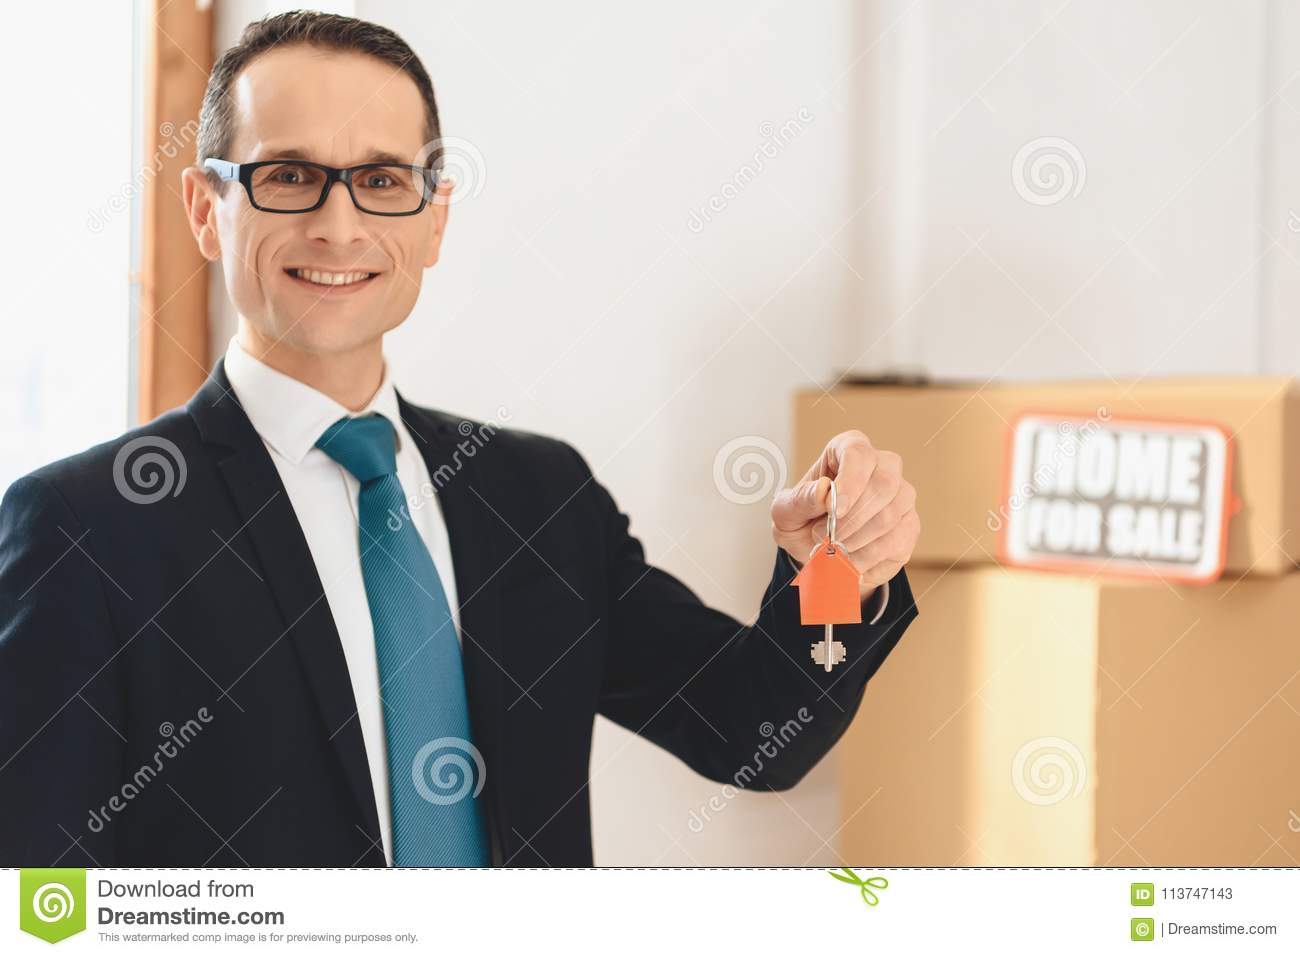 Realtor holding keys with house icon in new apartment with cardboard boxes.